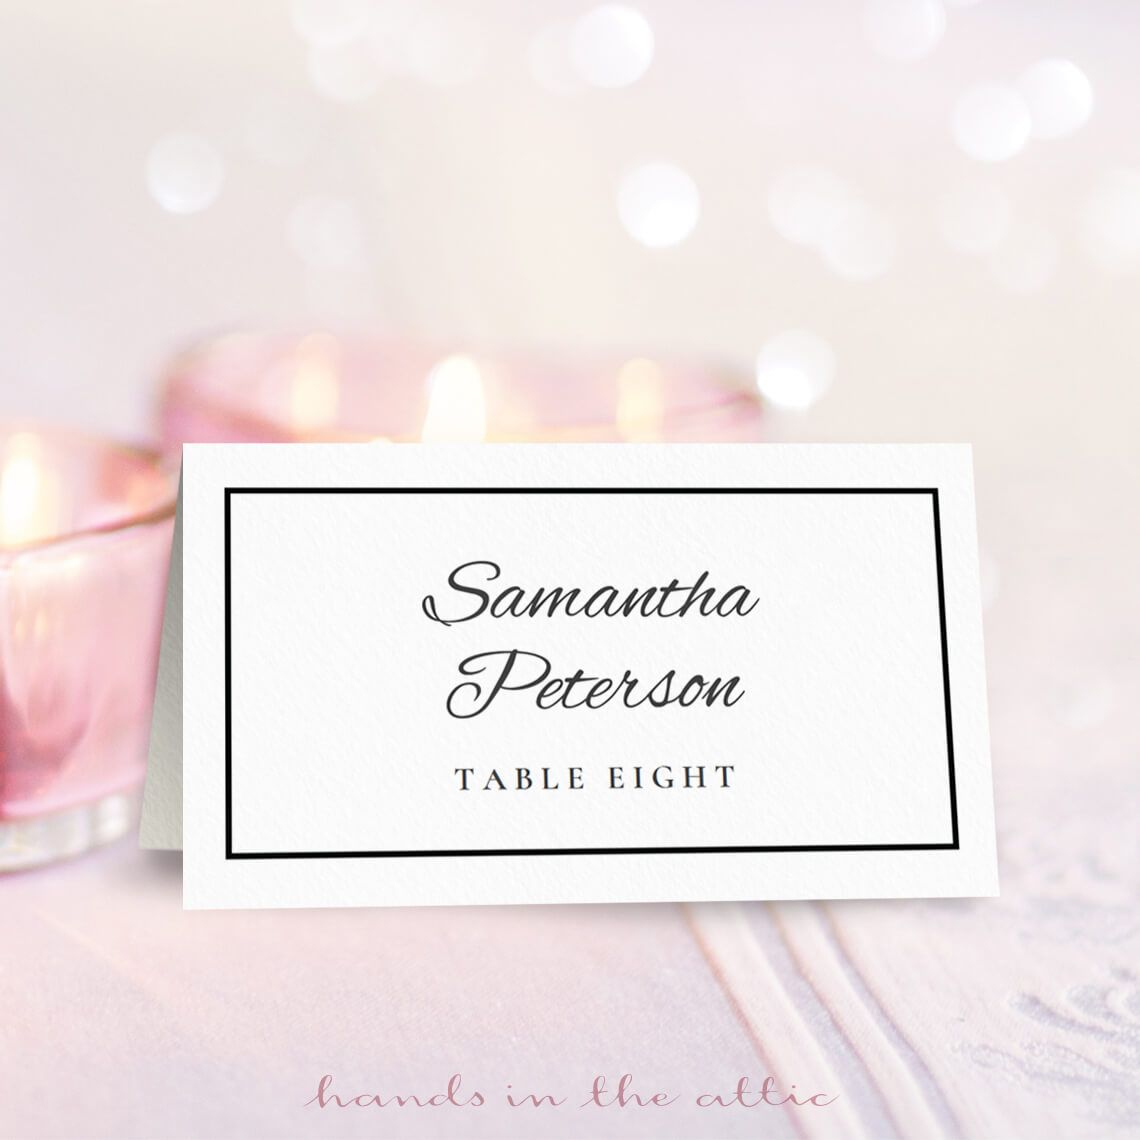 Wedding Place Card Template   Free On Handsintheattic Inside Table Place Card Template Free Download